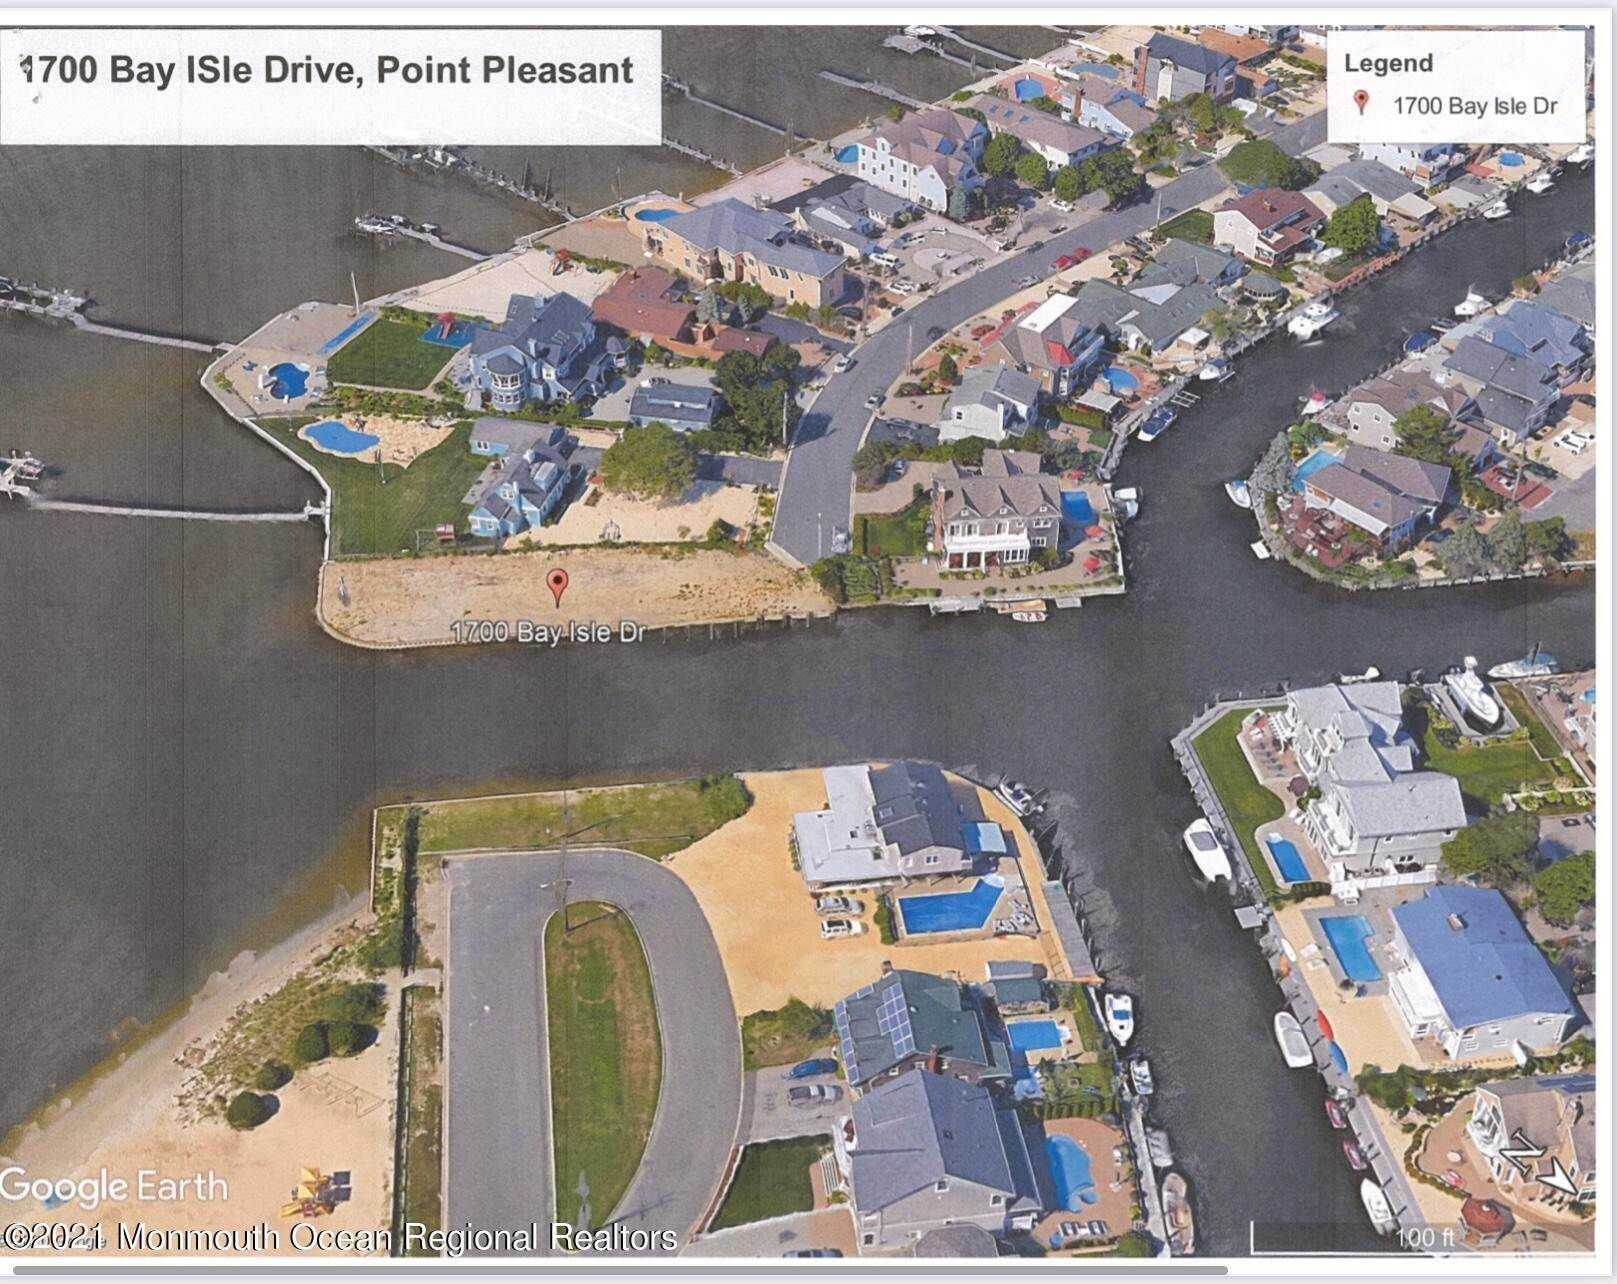 2. Land for Sale at 1700 Bay Isle Drive Point Pleasant, New Jersey 08742 United States